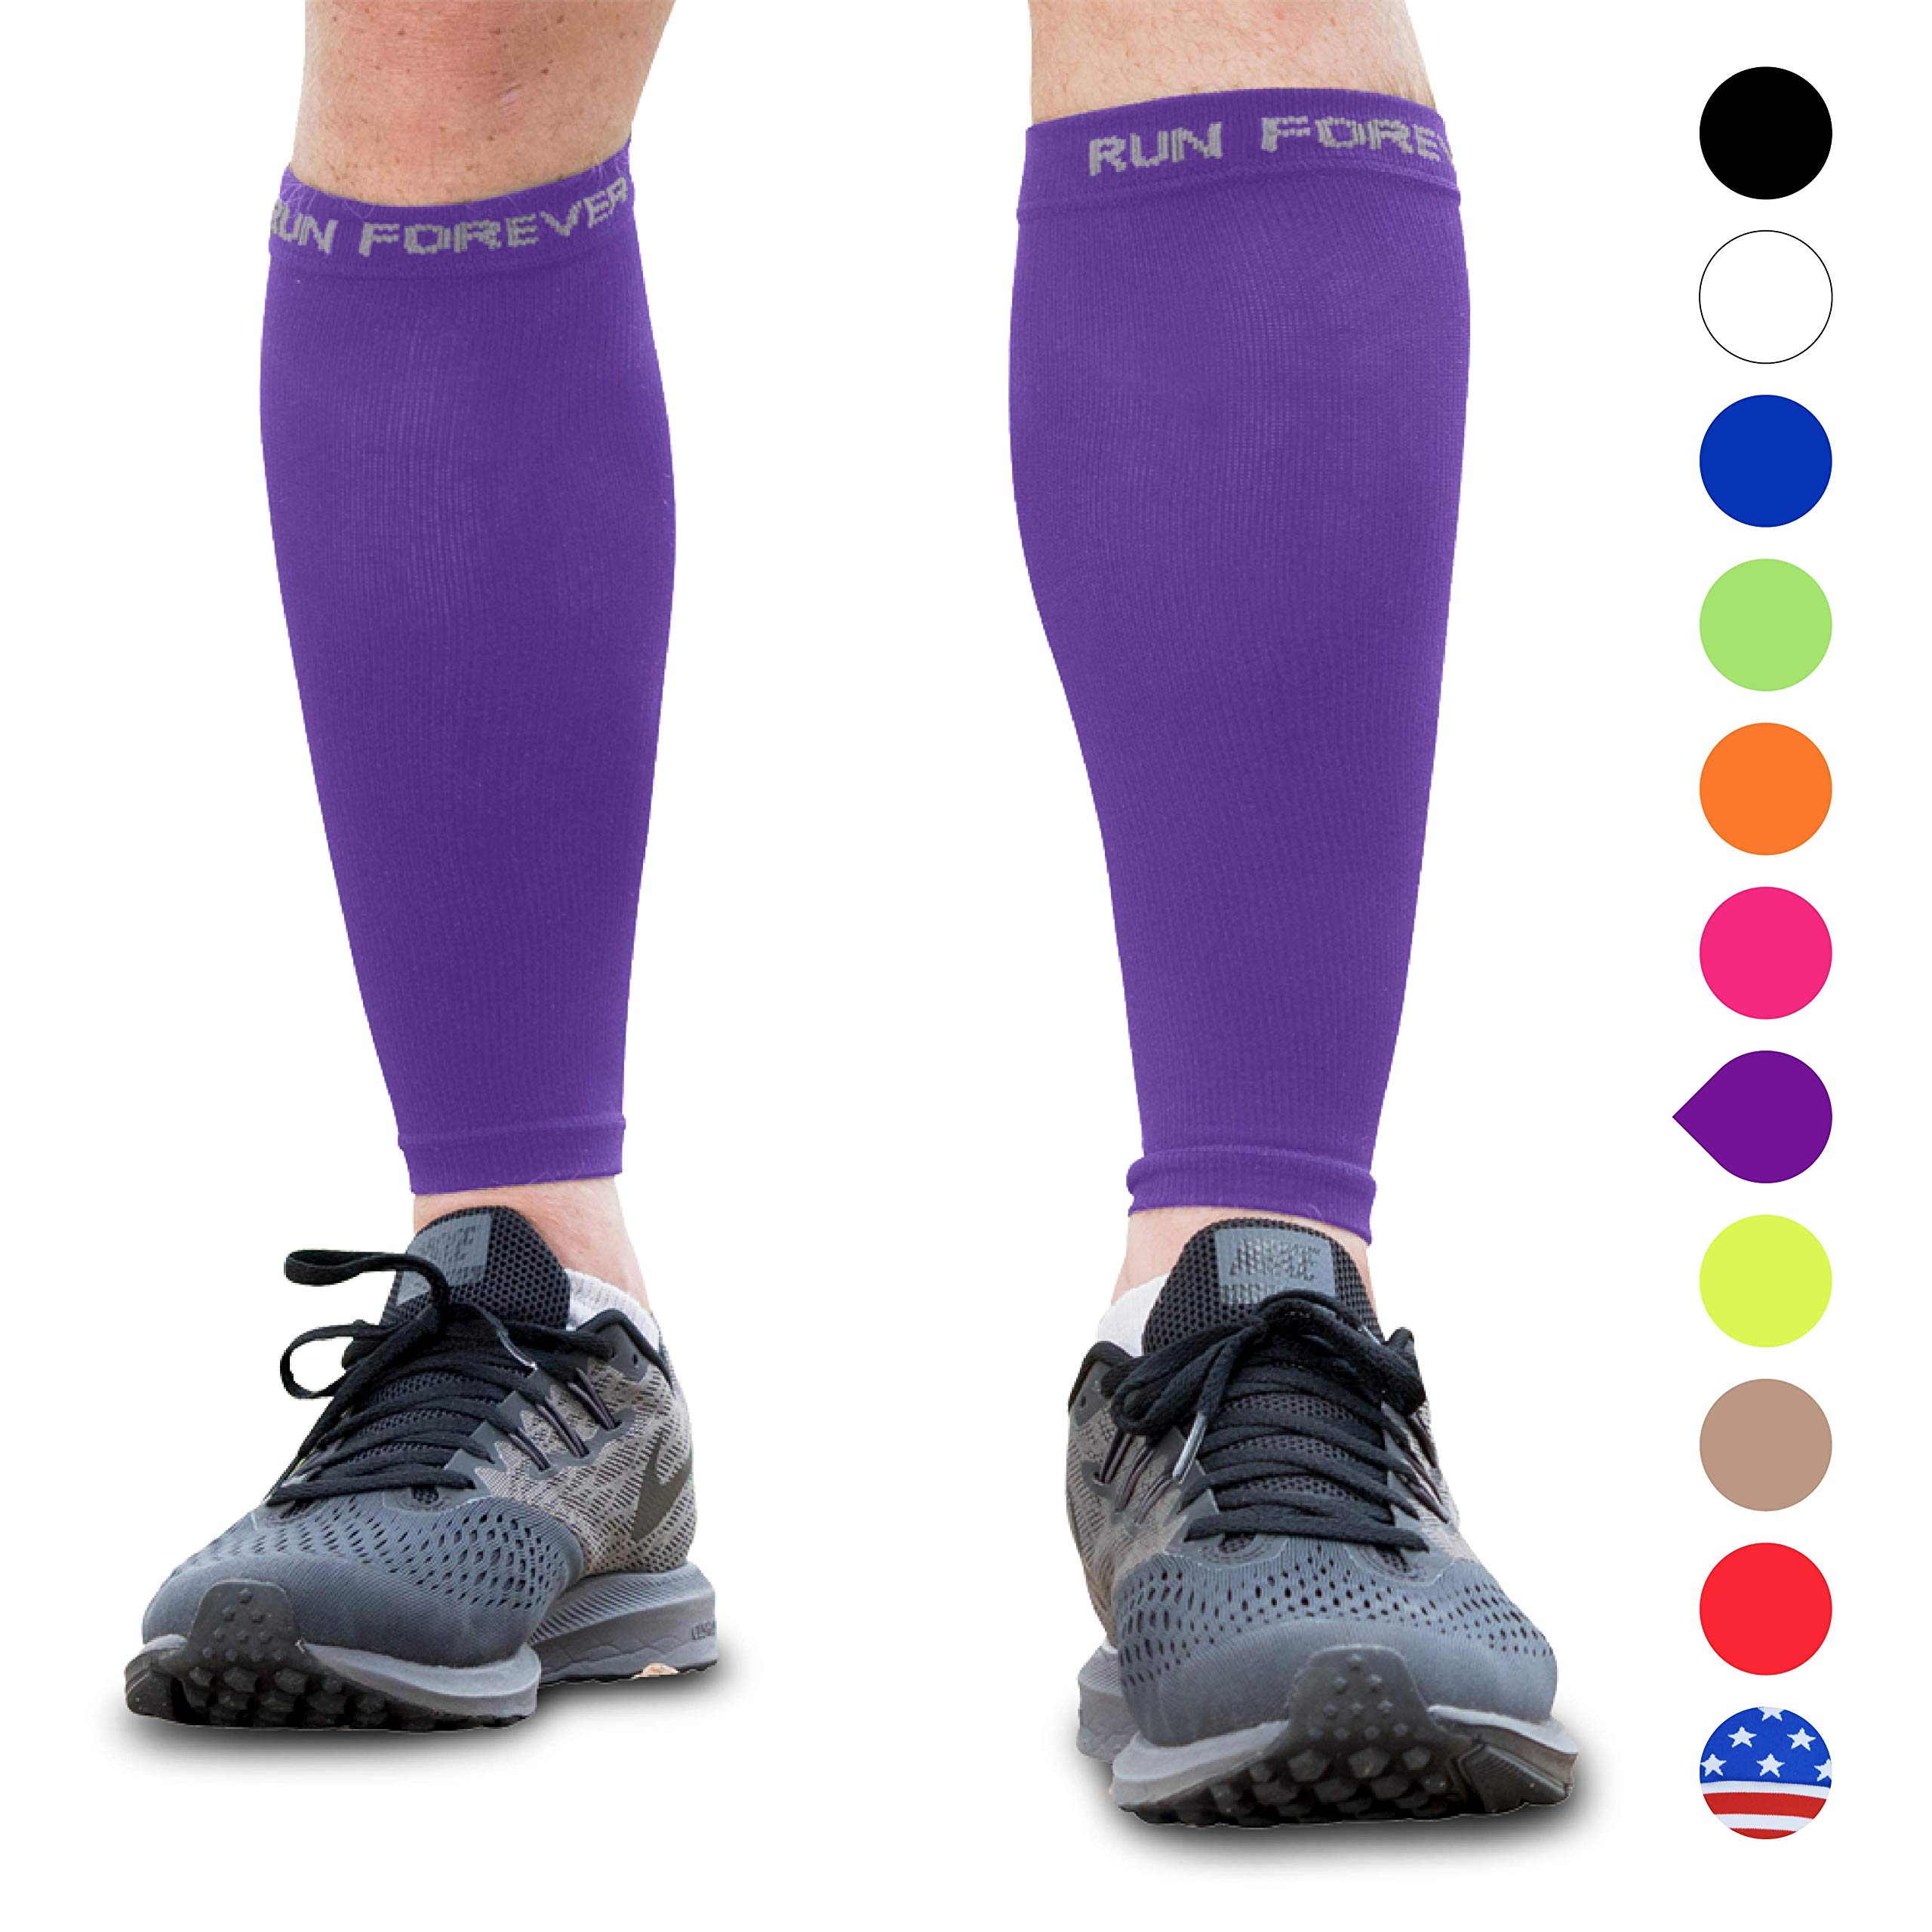 Calf Compression Sleeves - Leg Compression Socks for Runners, Shin Splint, Varicose Vein & Calf Pain Relief - Calf Guard Great for Running, Cycling, Maternity, Travel, Nurses (Purple, Medium) by Run Forever Sports